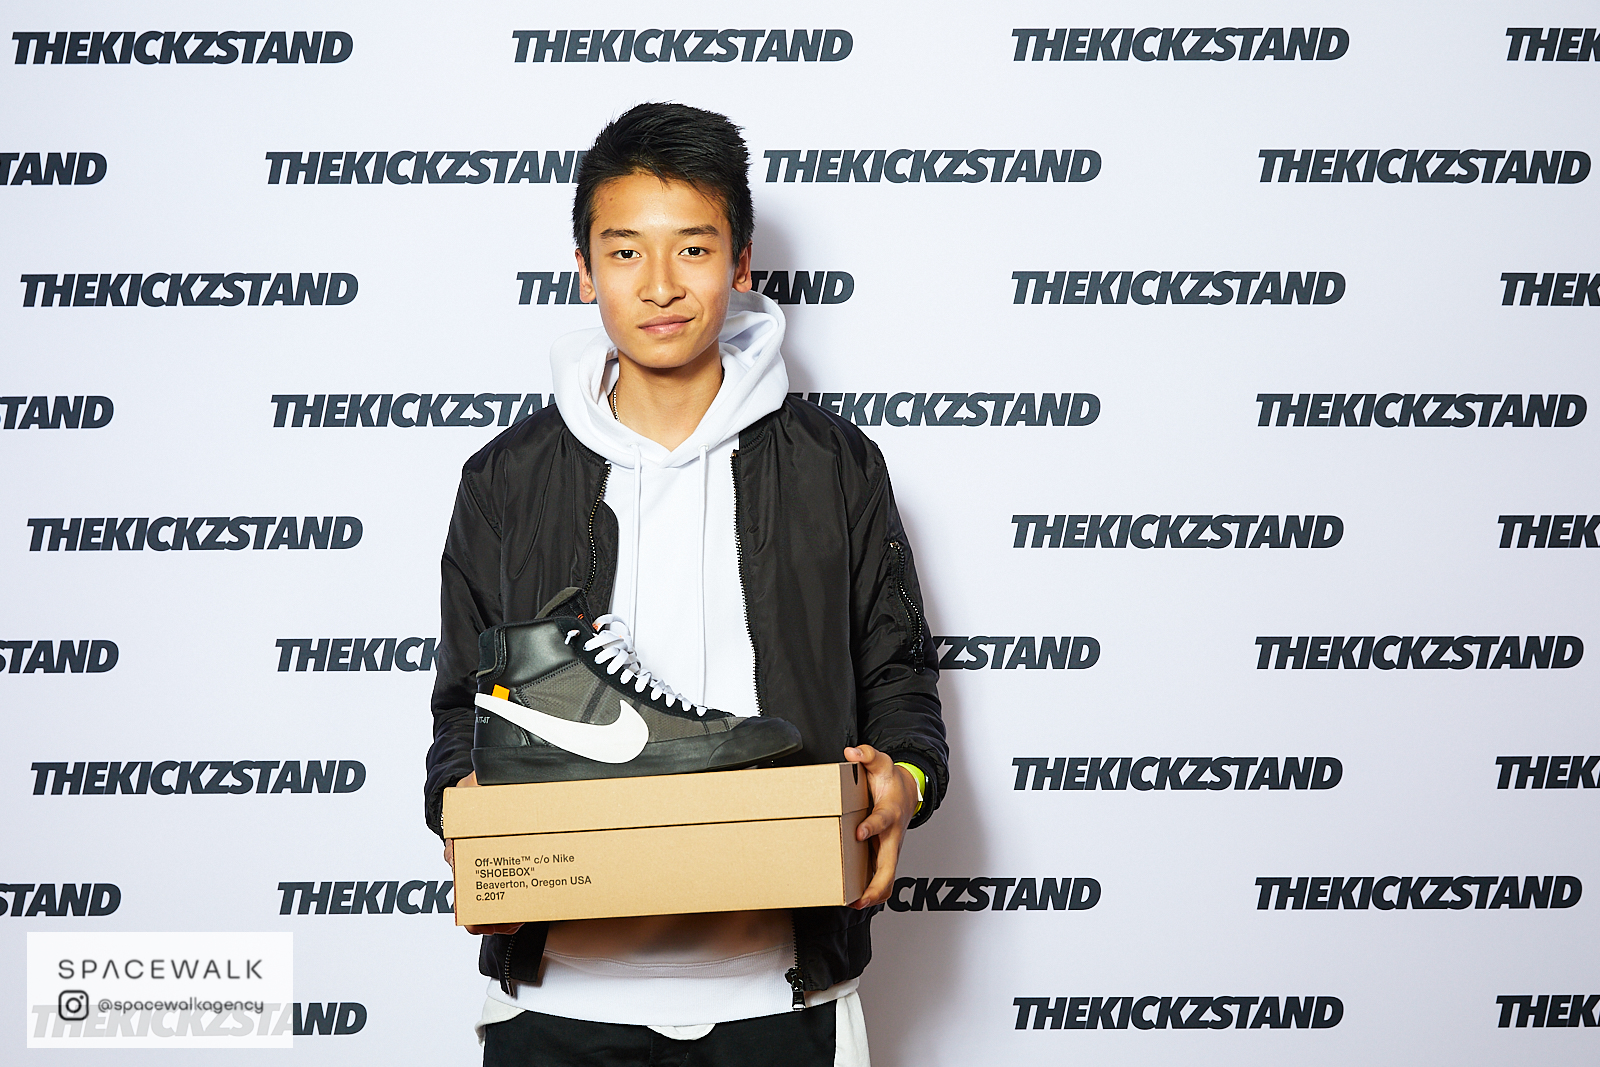 KICKZSTAND_BOOTH_040